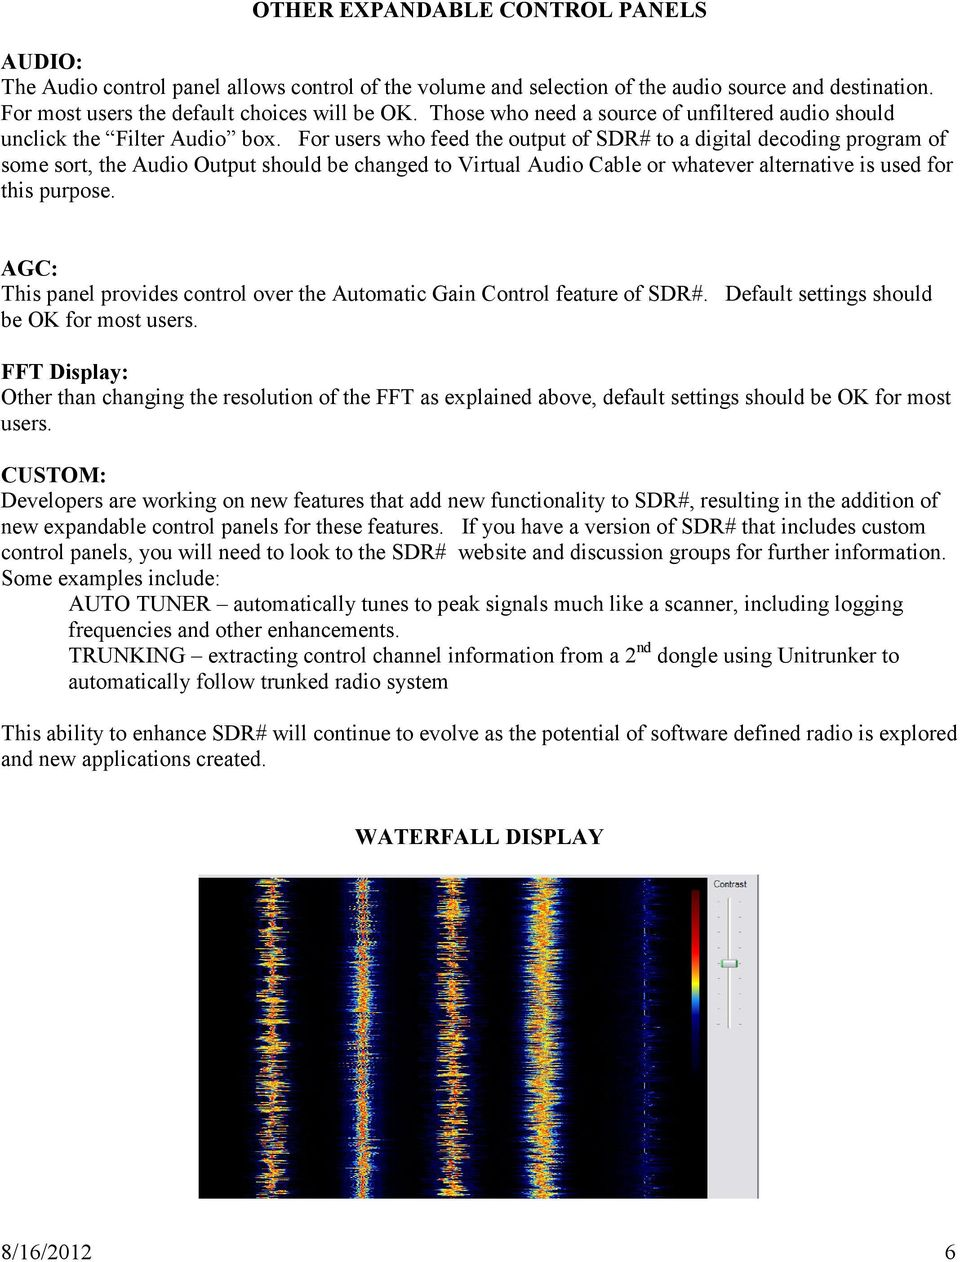 A USER S GUIDE TO SDR# (SDRSHARP) - PDF